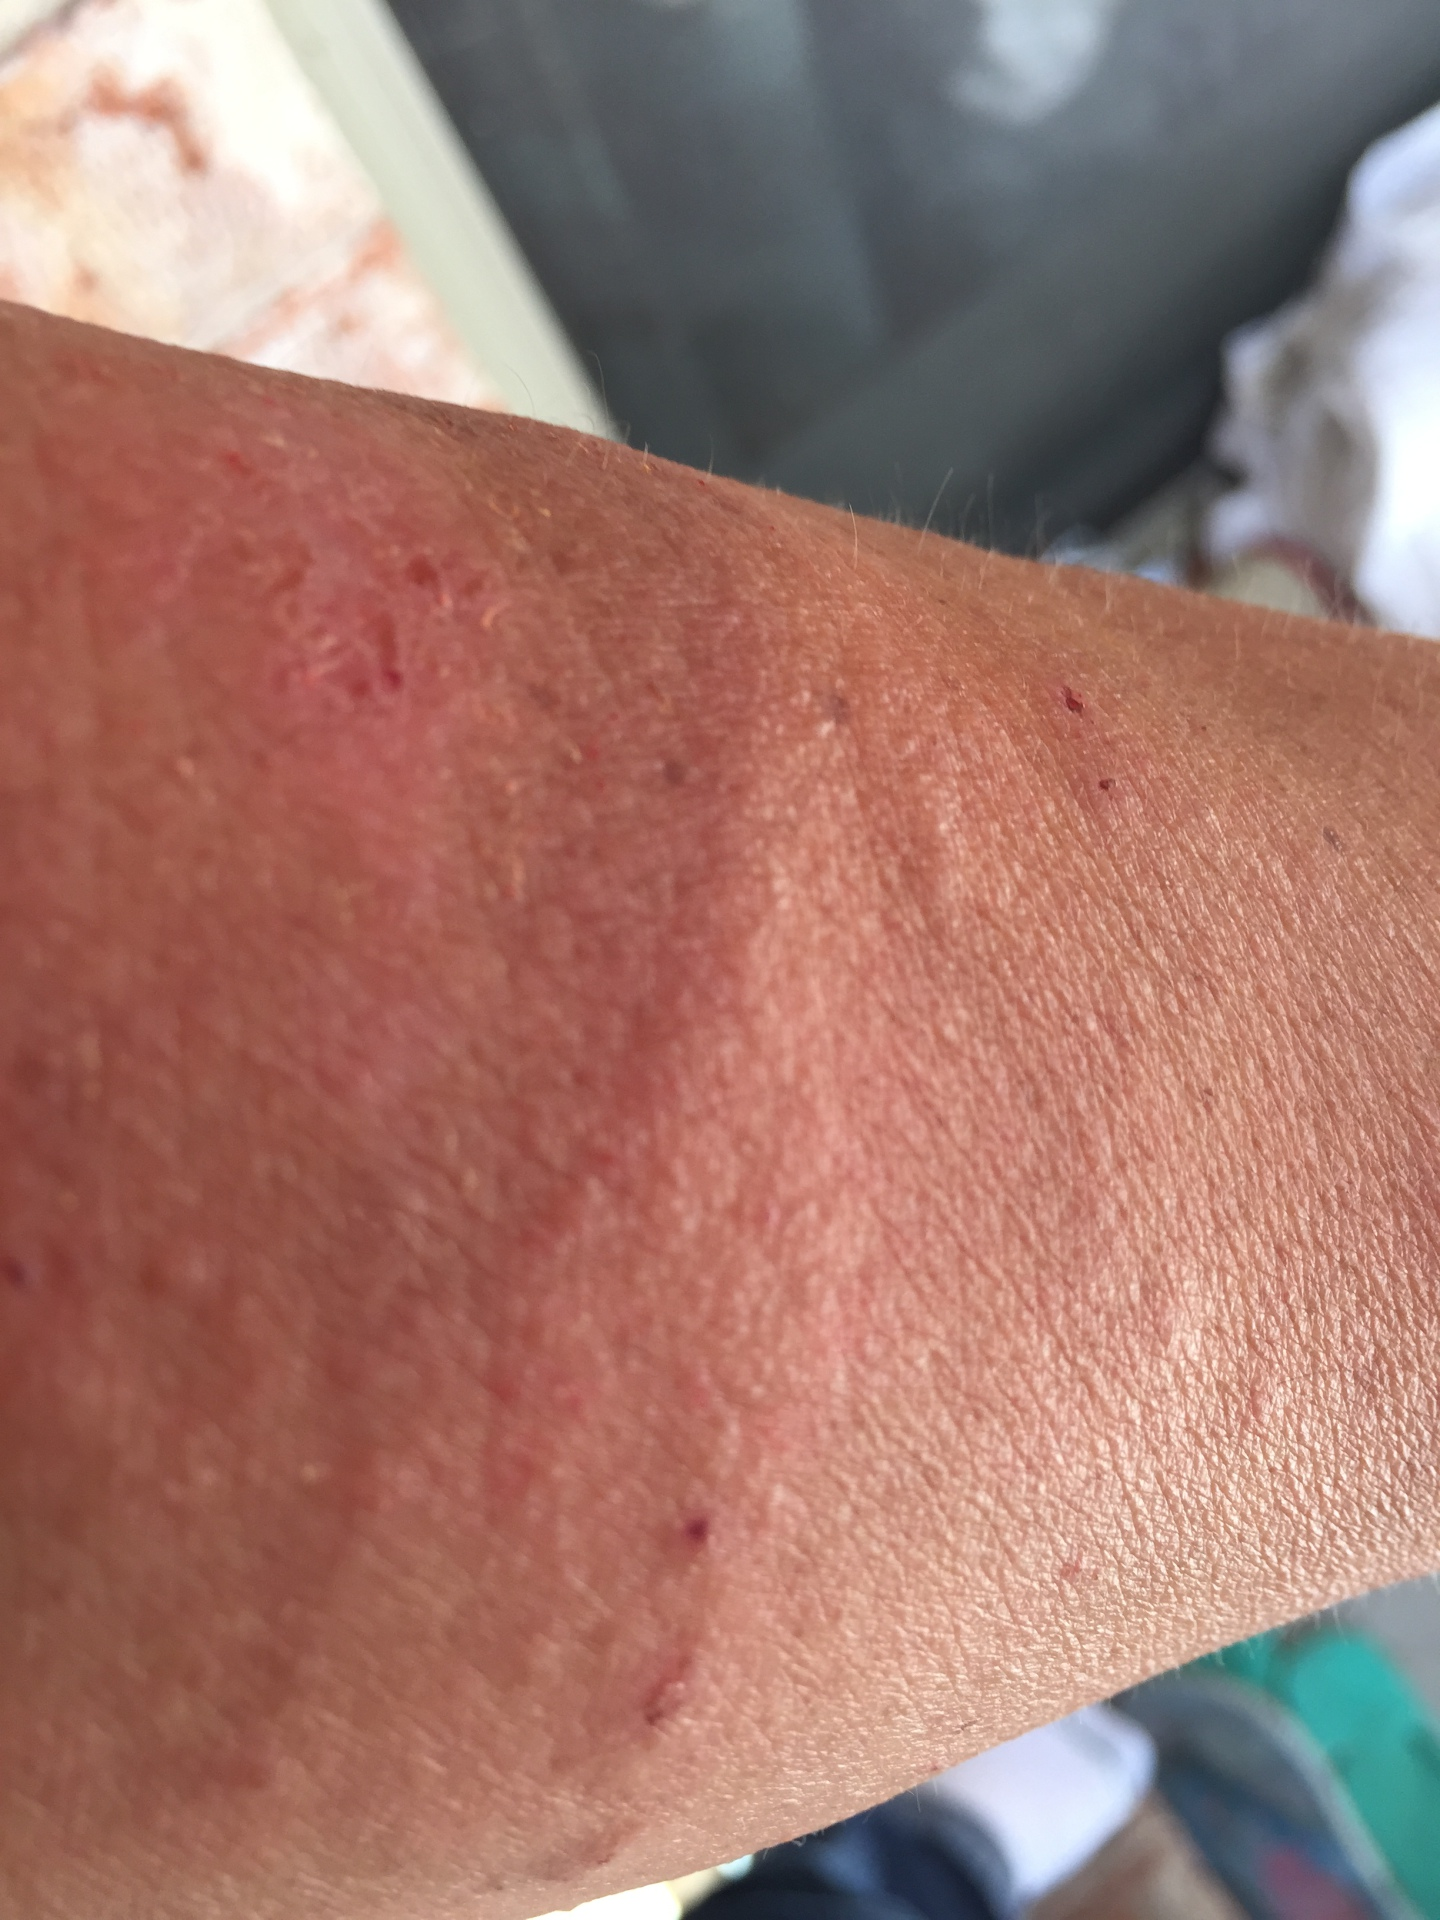 Skin Rash before treatment